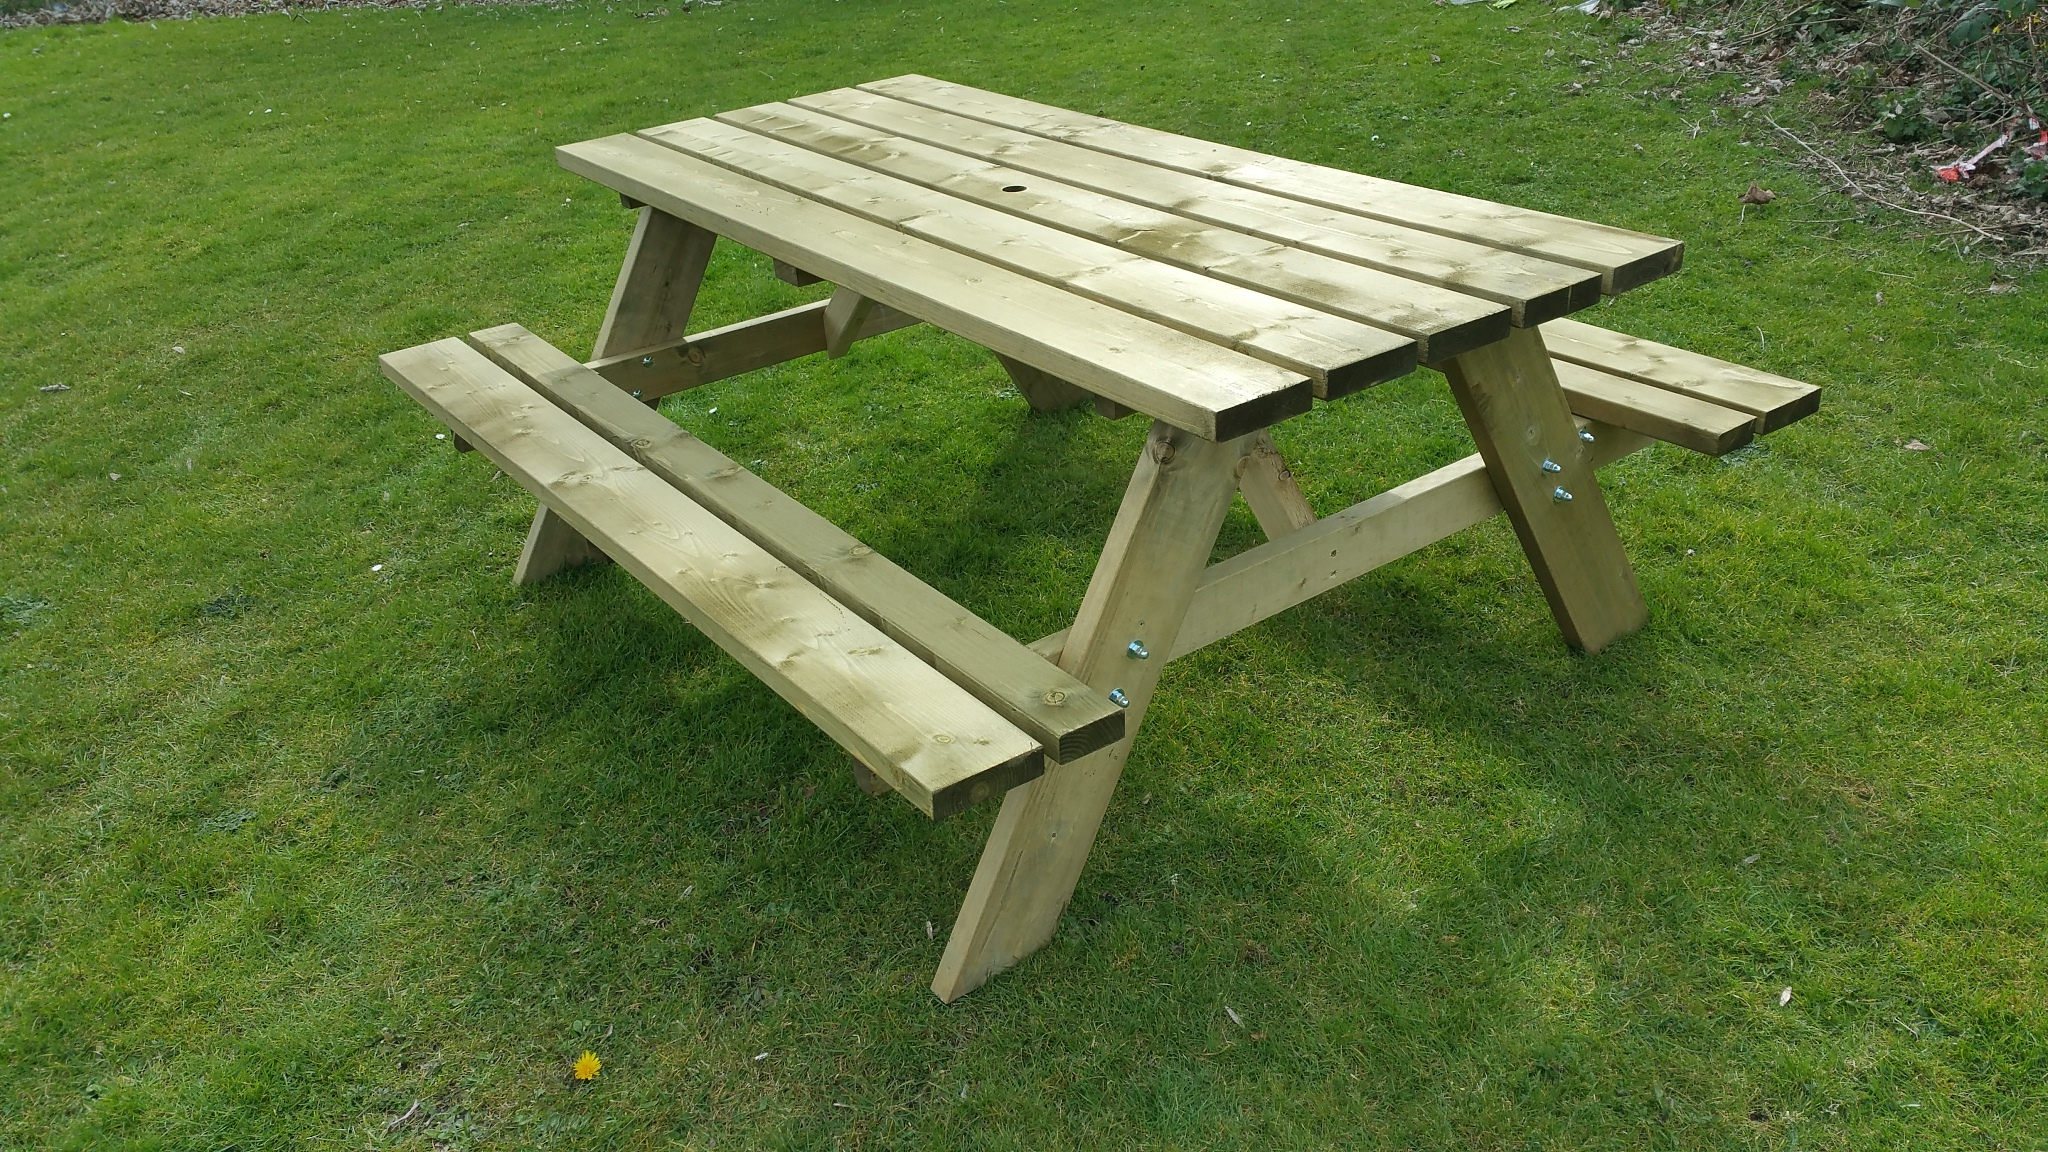 hardwood to foldable free wooden tables most best on plans garden wood benches converts class deck kids with where table trestle seats buy that for umbrella chair picnic bench